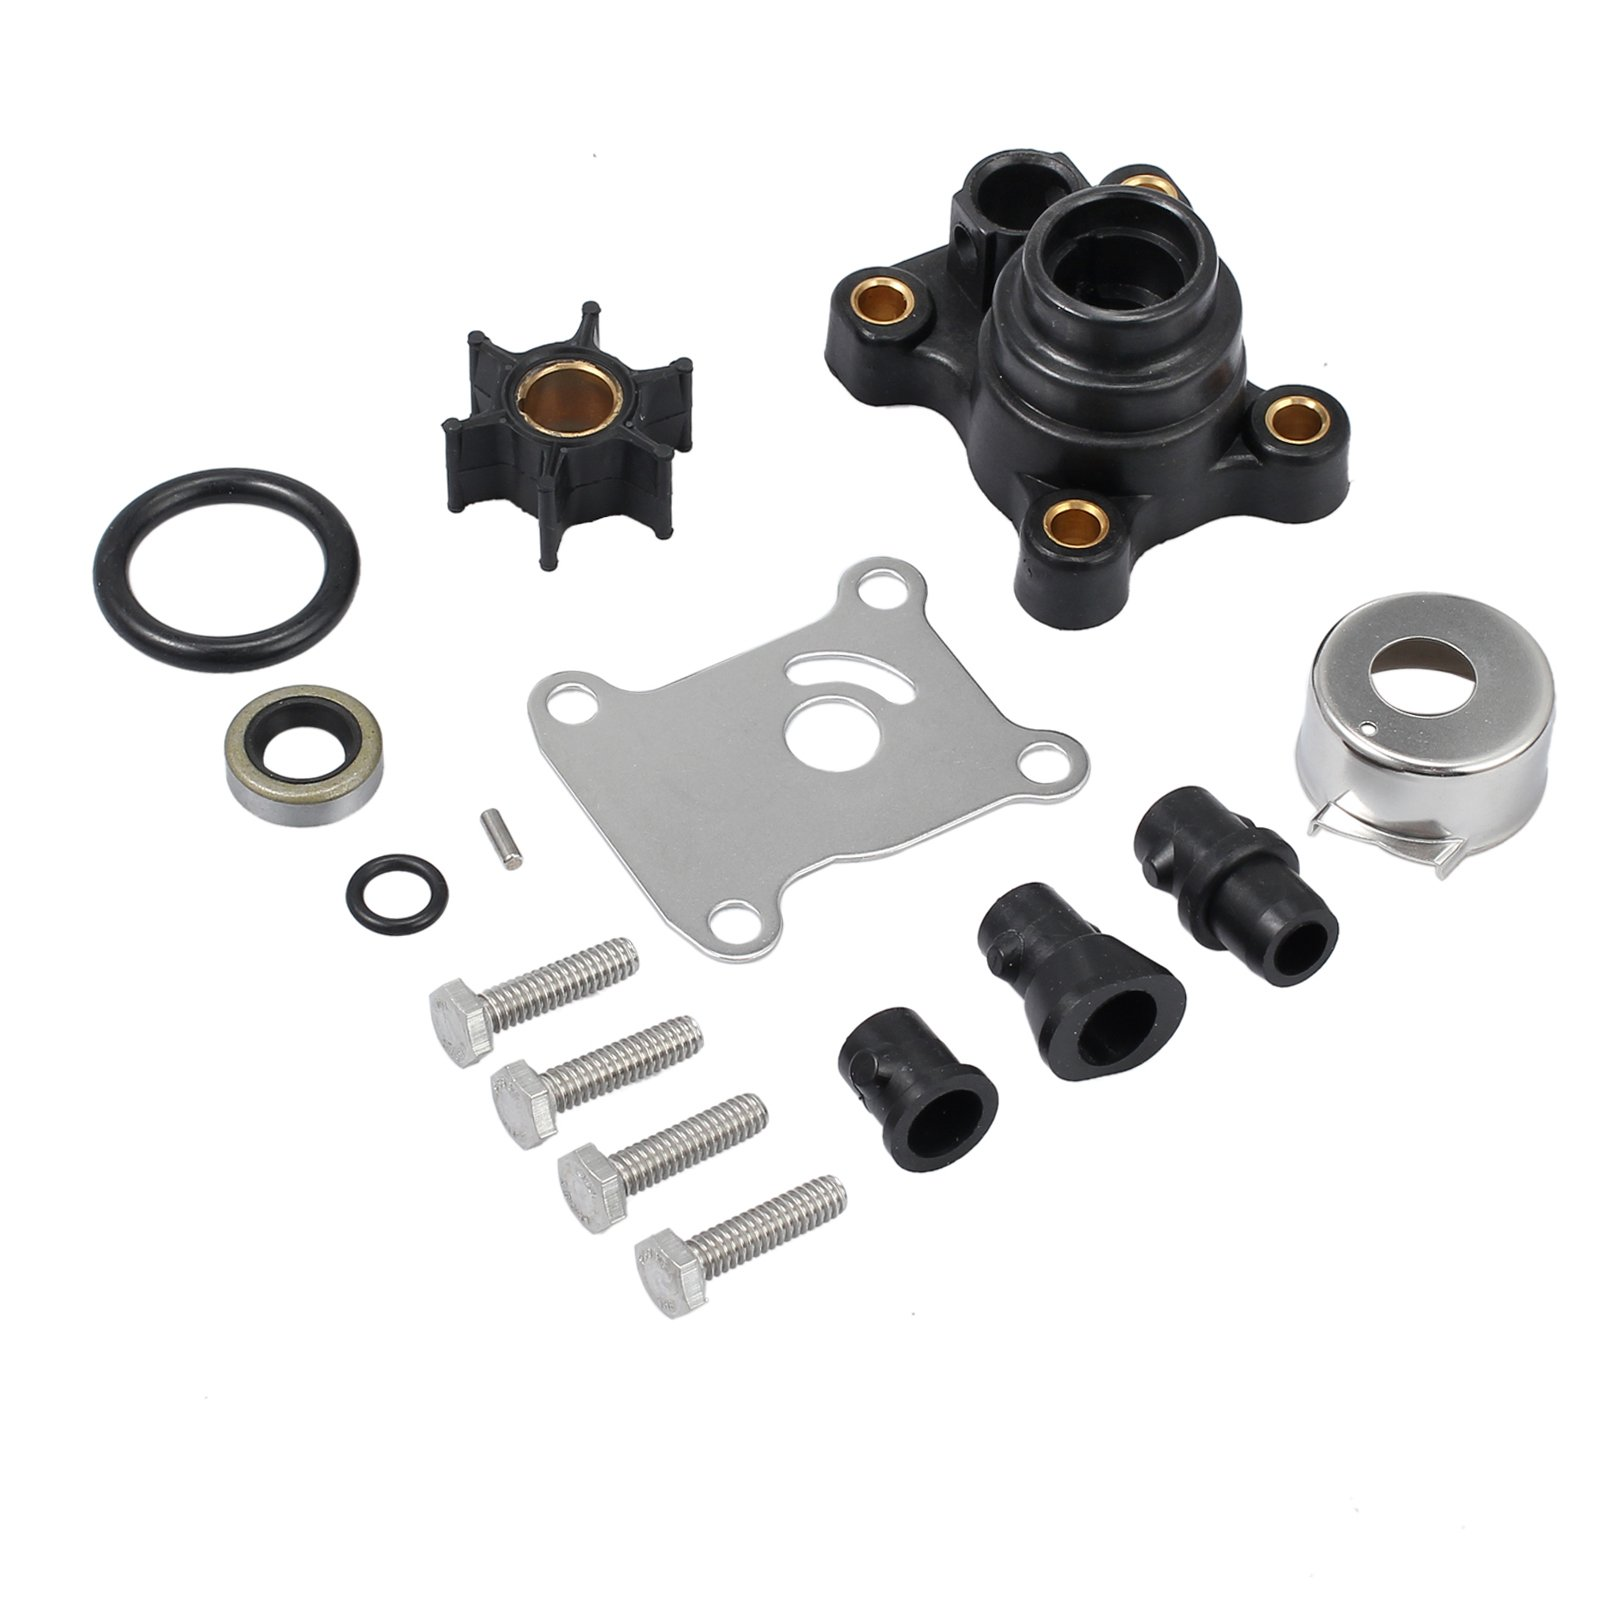 CAMWAY Impeller Water Pump Repair Kit Replaces for 9.9hp & 15hp Johnson/Evinrude 2-Stroke 1974 & Later, 4-Stroke 1995 & Later by CAMWAY